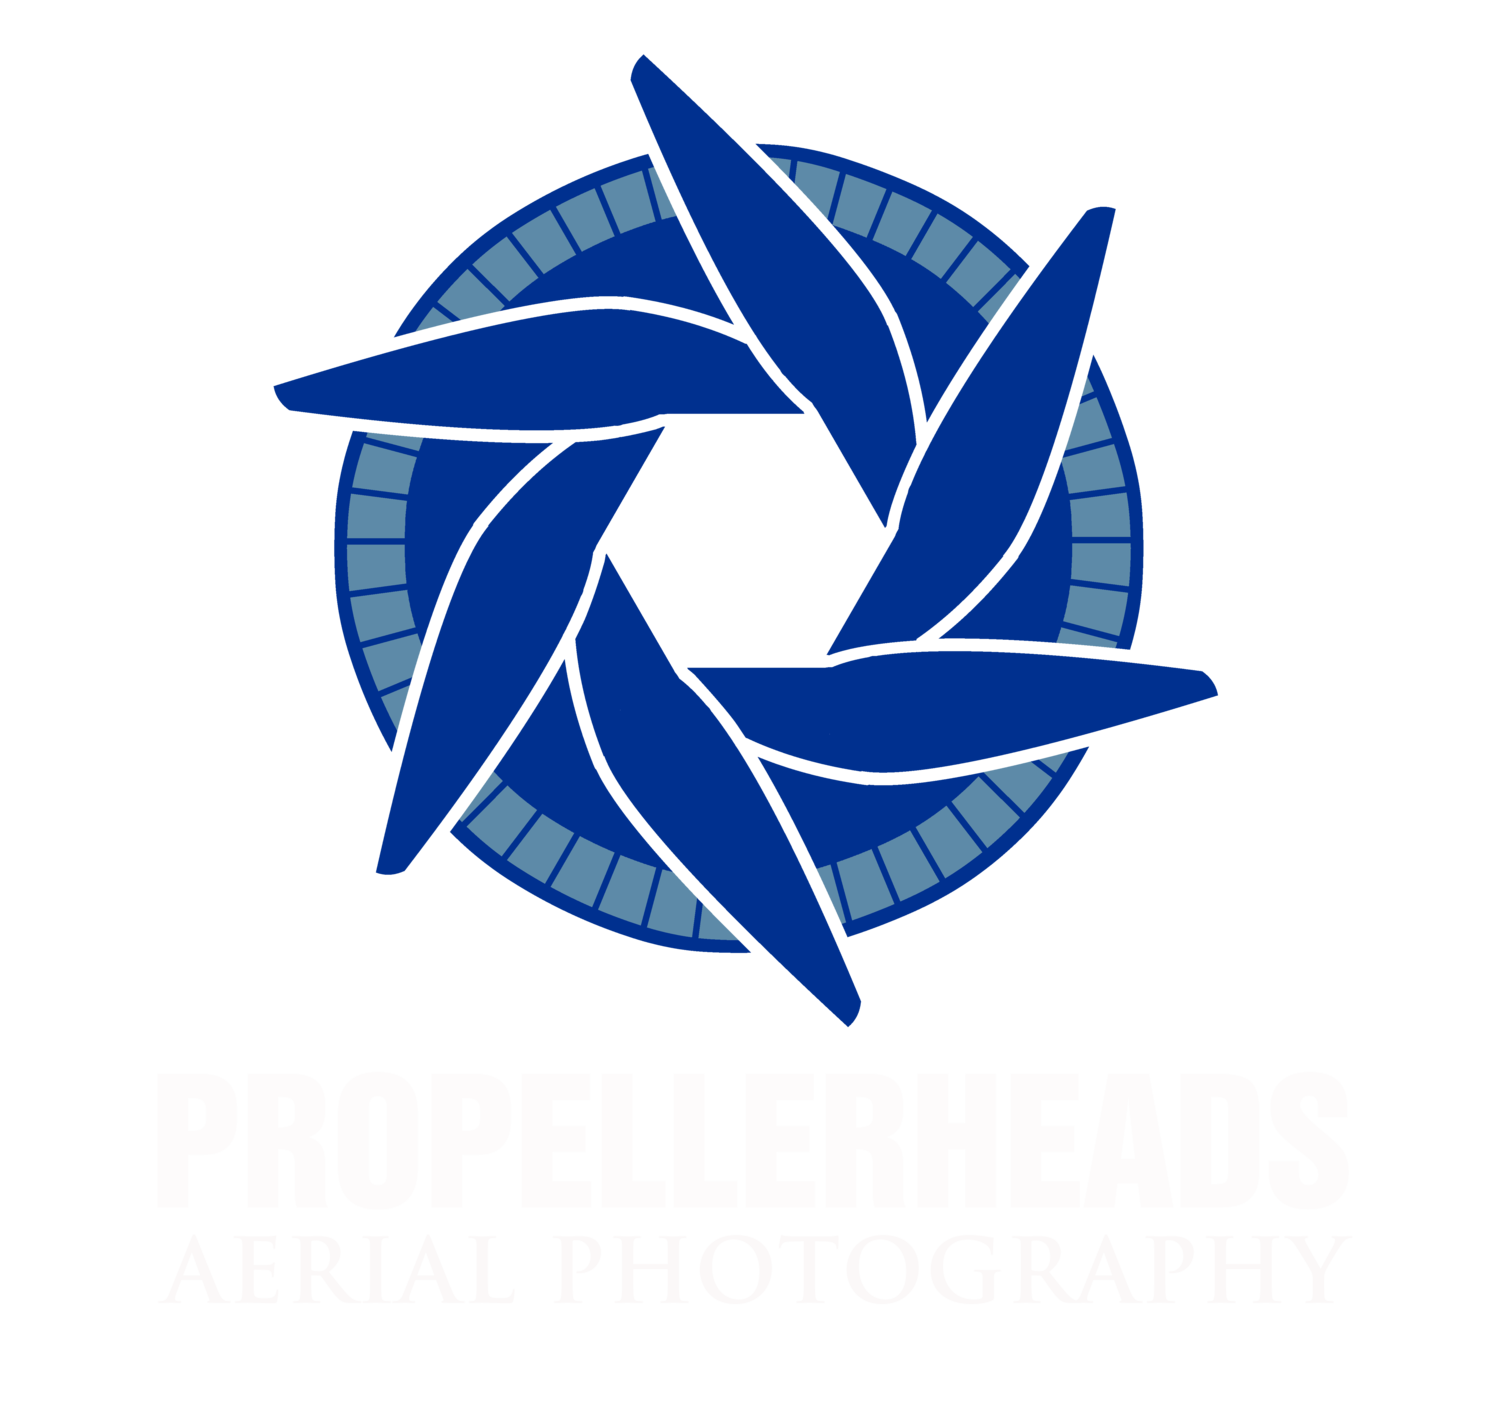 Propellerheads Aerial Photography